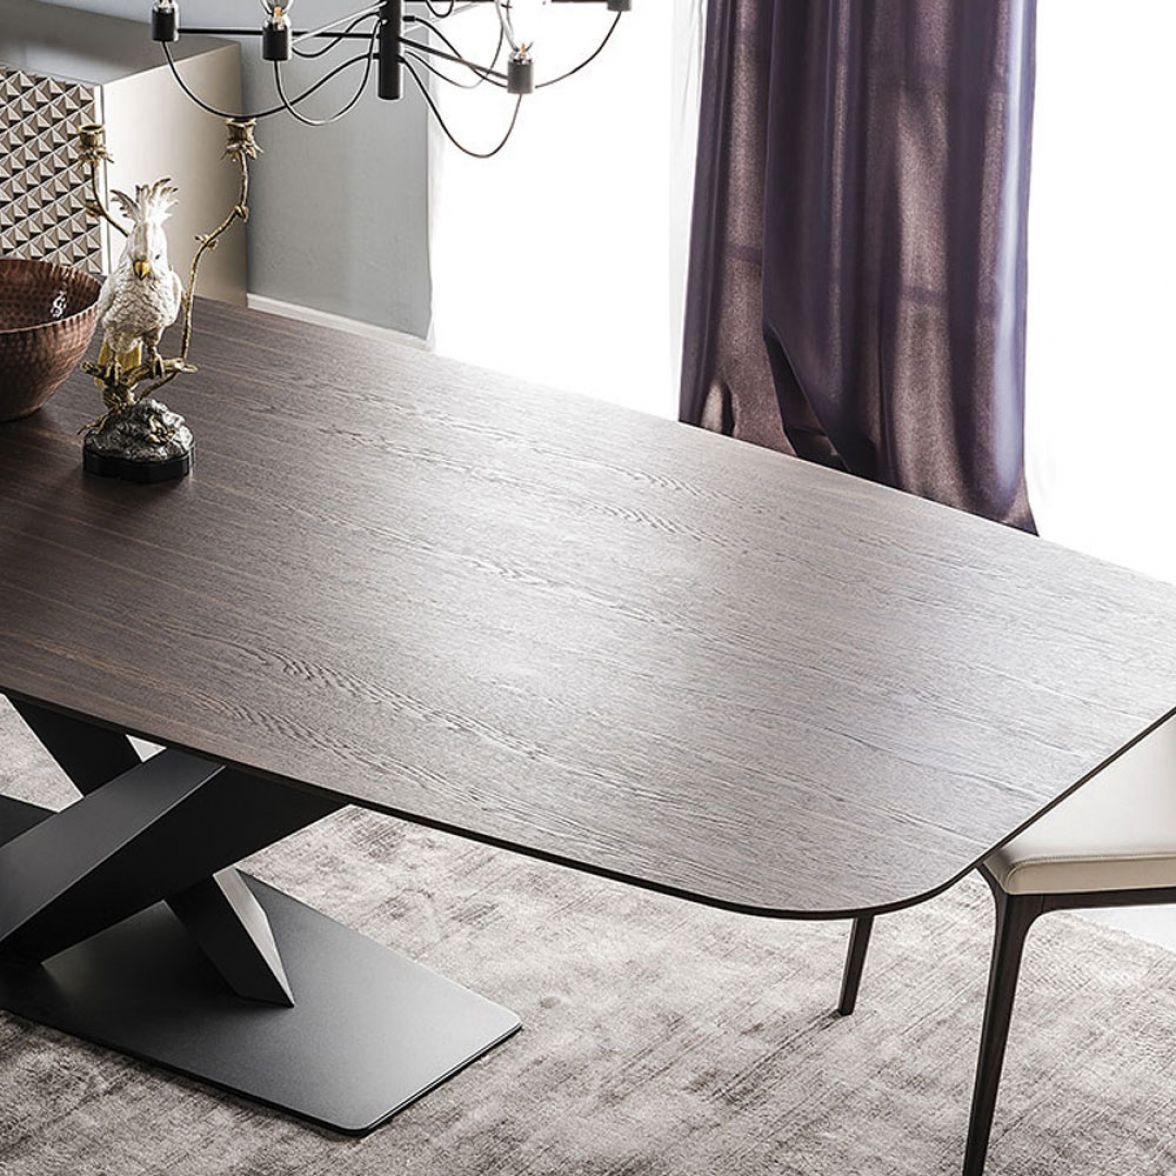 Stratos Wood table